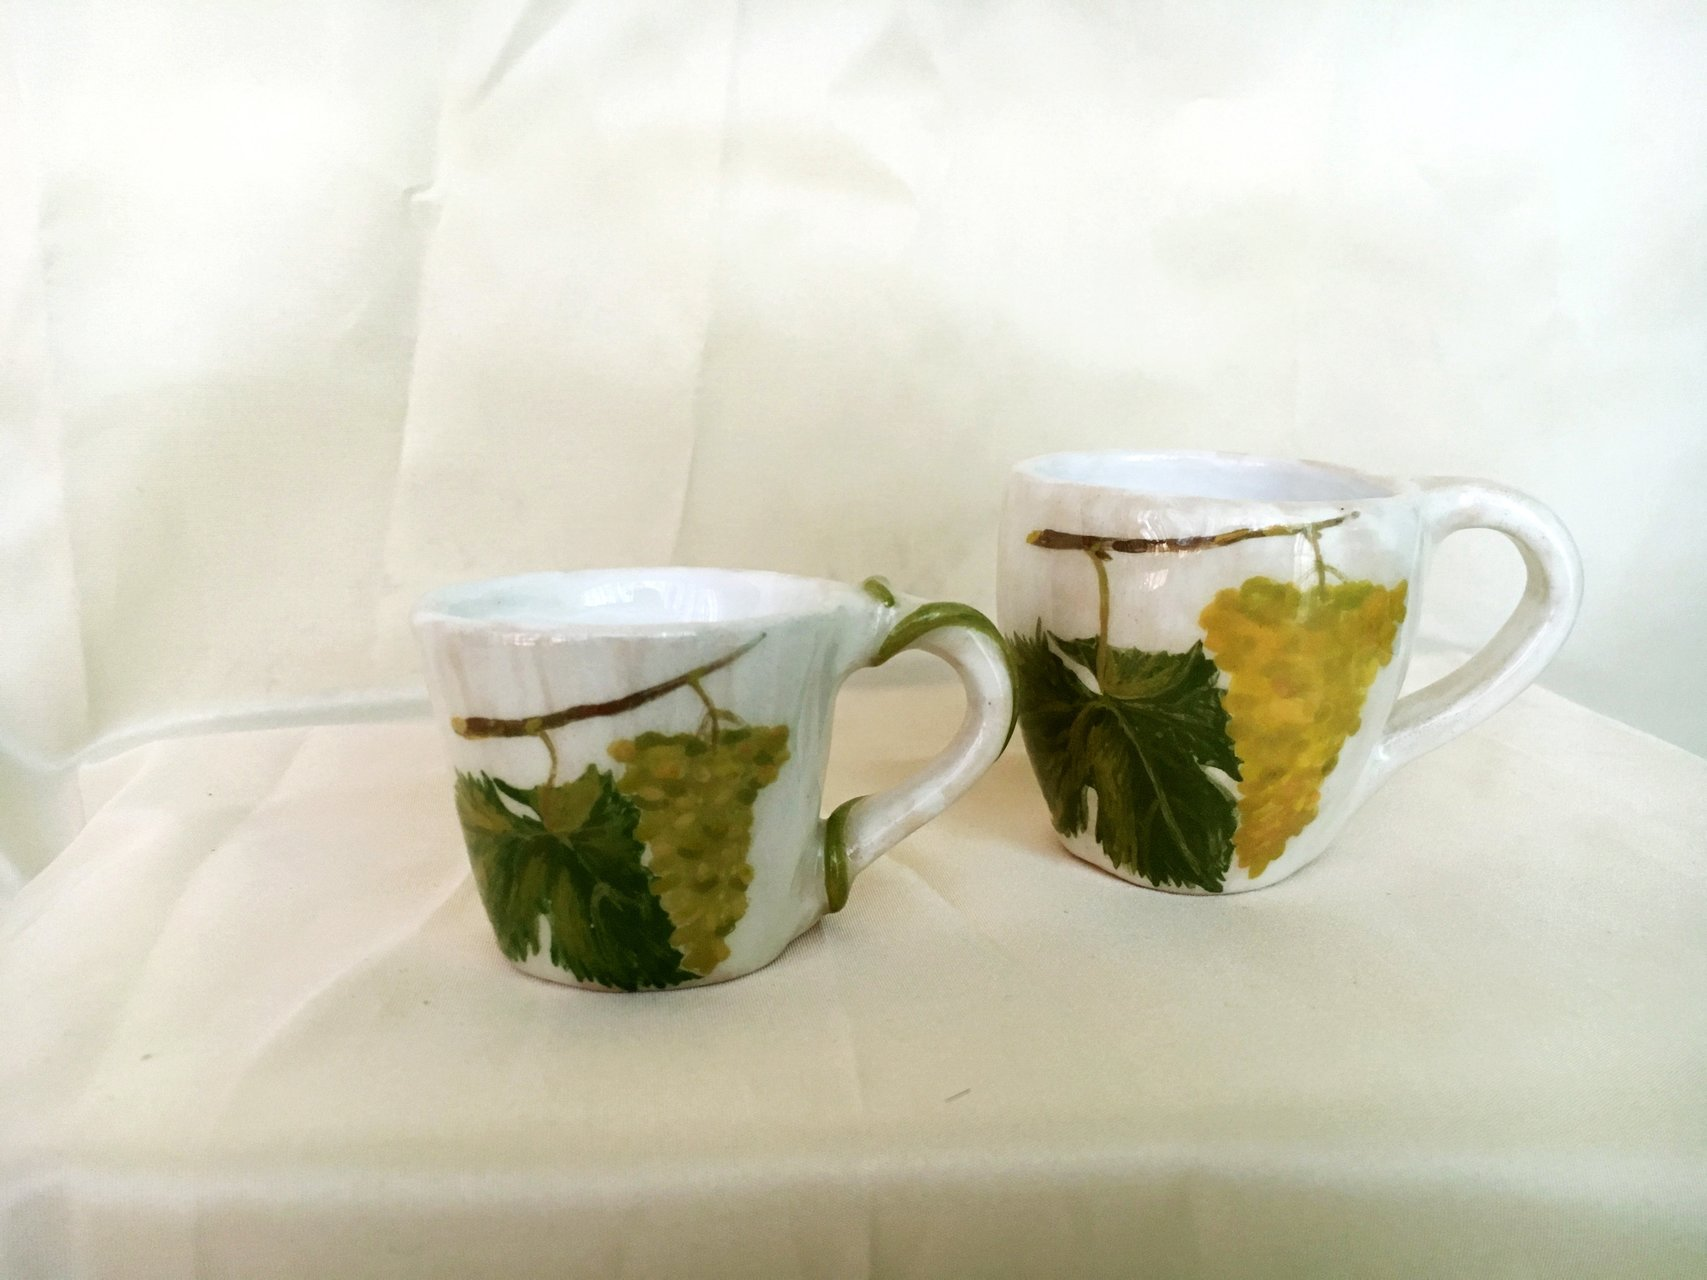 A set of white coffee cups Bunch of grapes - Cups, glasses, mugs, height - 6 cm, volume - 100 ml, photo 2 of 3.